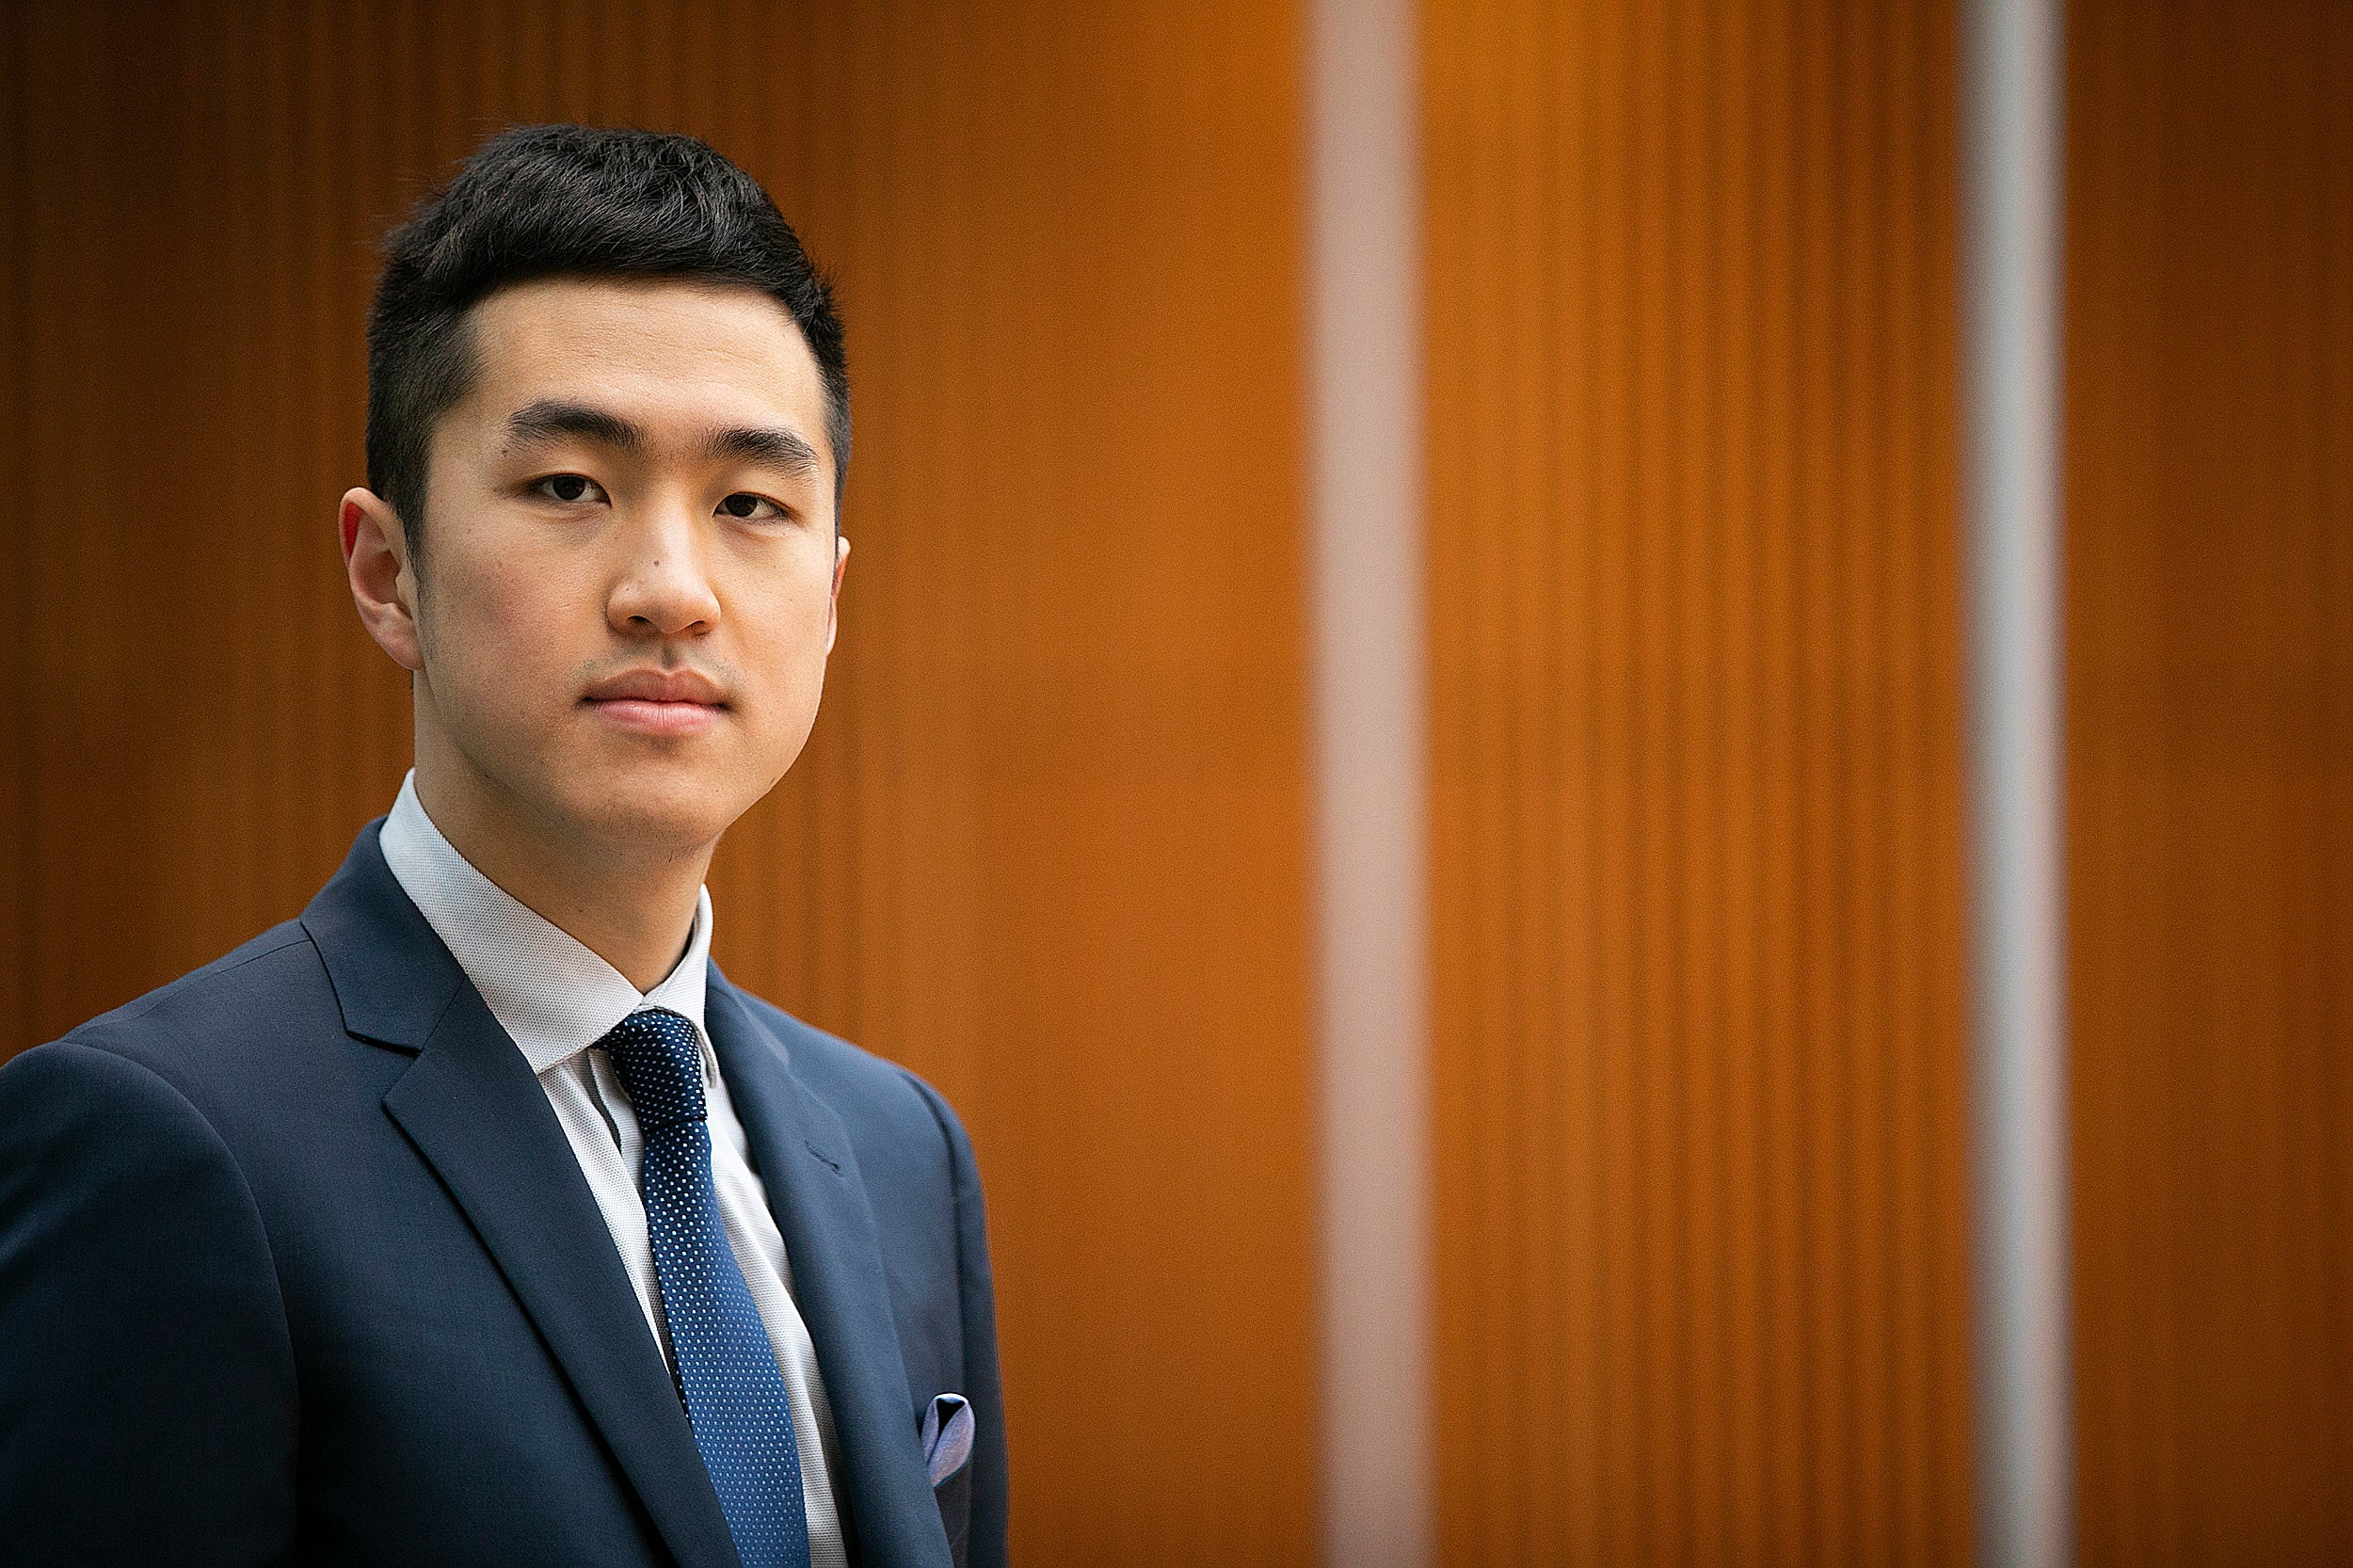 Instead of looking forward to traveling to England for graduate study at the University of Oxford in October, Jin Park fears he won't be able to return to the U.S. as a result of President Trump ending the DACA program in 2017.